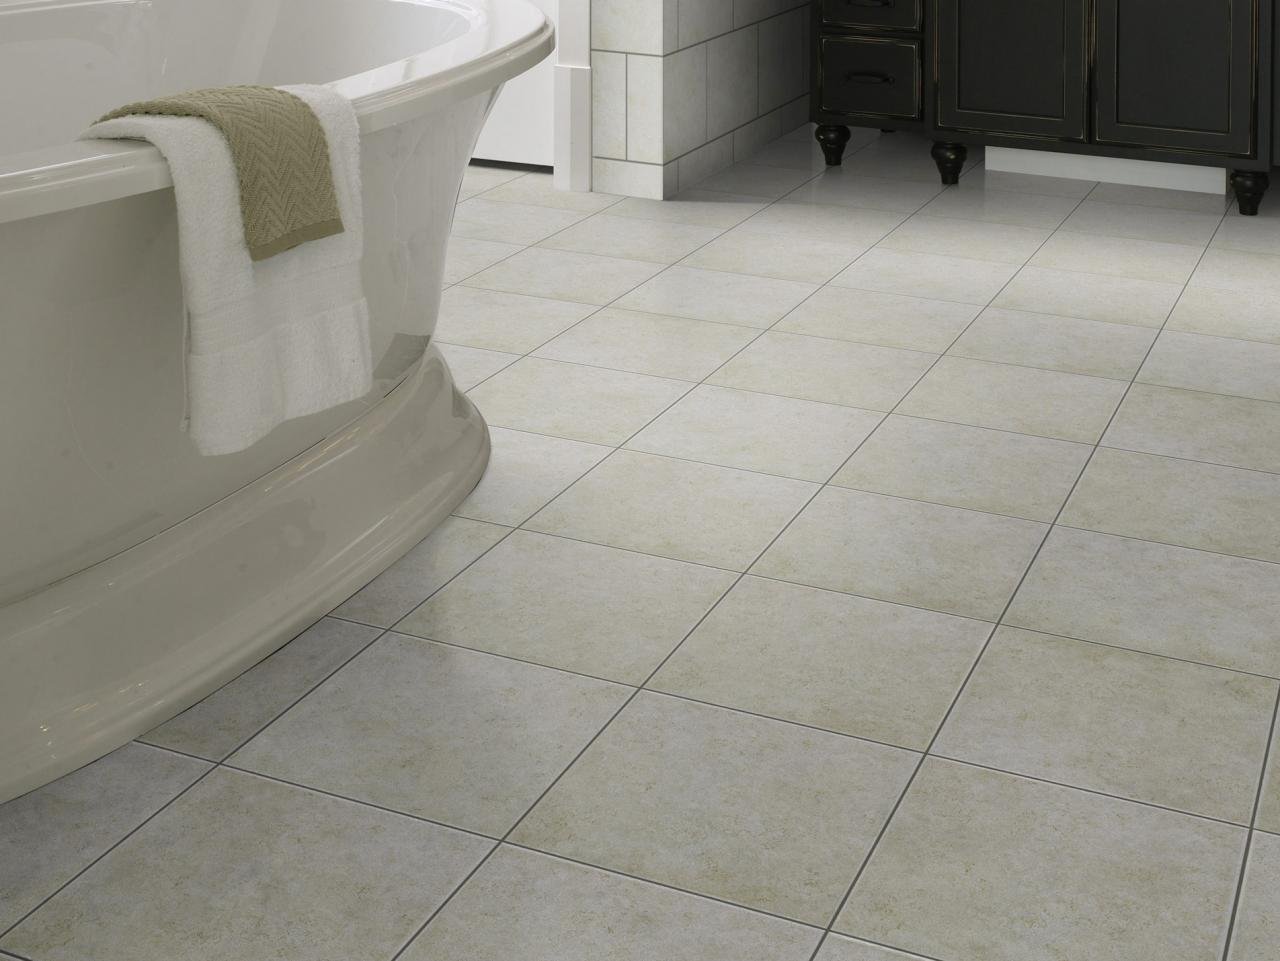 Why homeowners love ceramic tile hgtv for Bathroom ceramic tiles design